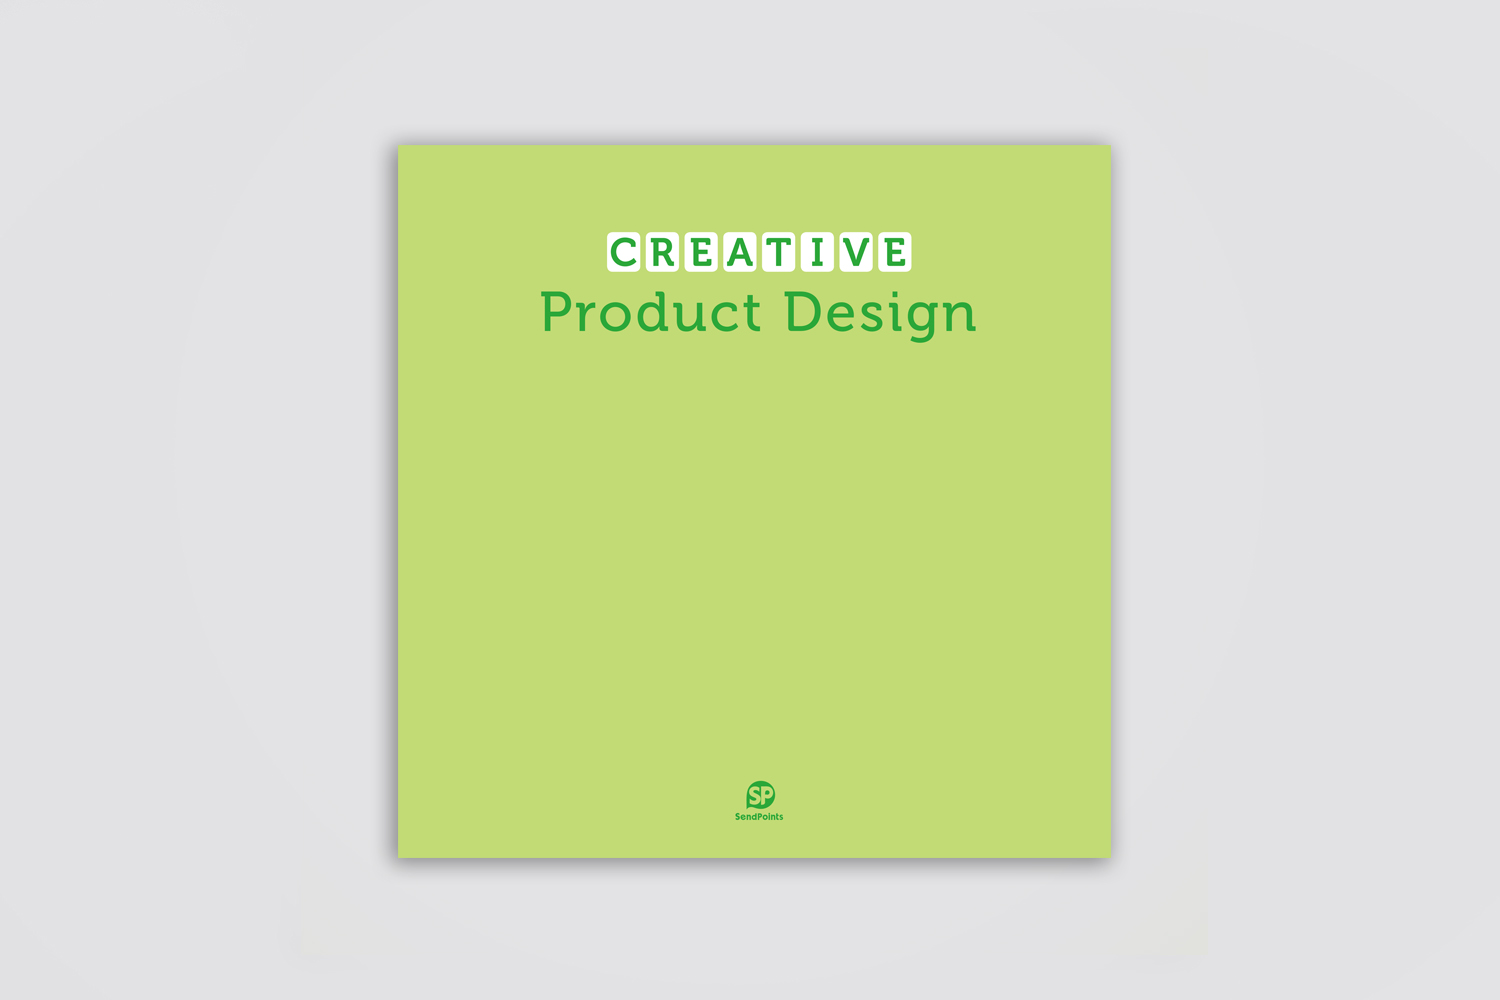 LIBRO  | Creative Product Design | Autor: Christina Hwang | Editorial: SendPoints | China | 2013